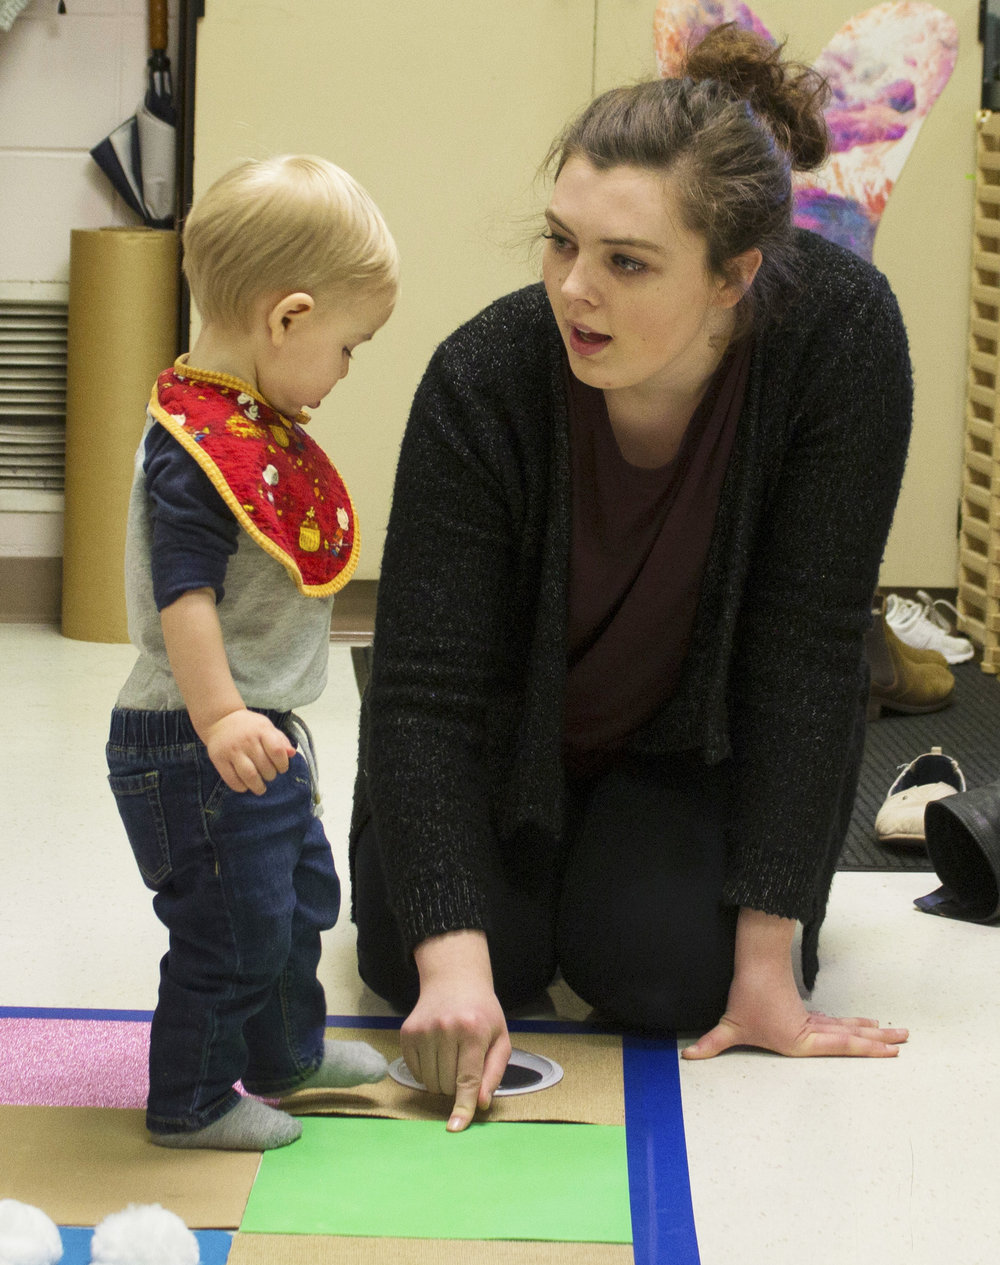 Alyssa Boyer  UW-Stout Early Childhood Education INTERNSHIP: Infant-4k, Child and Family Study Center, UW-Stout